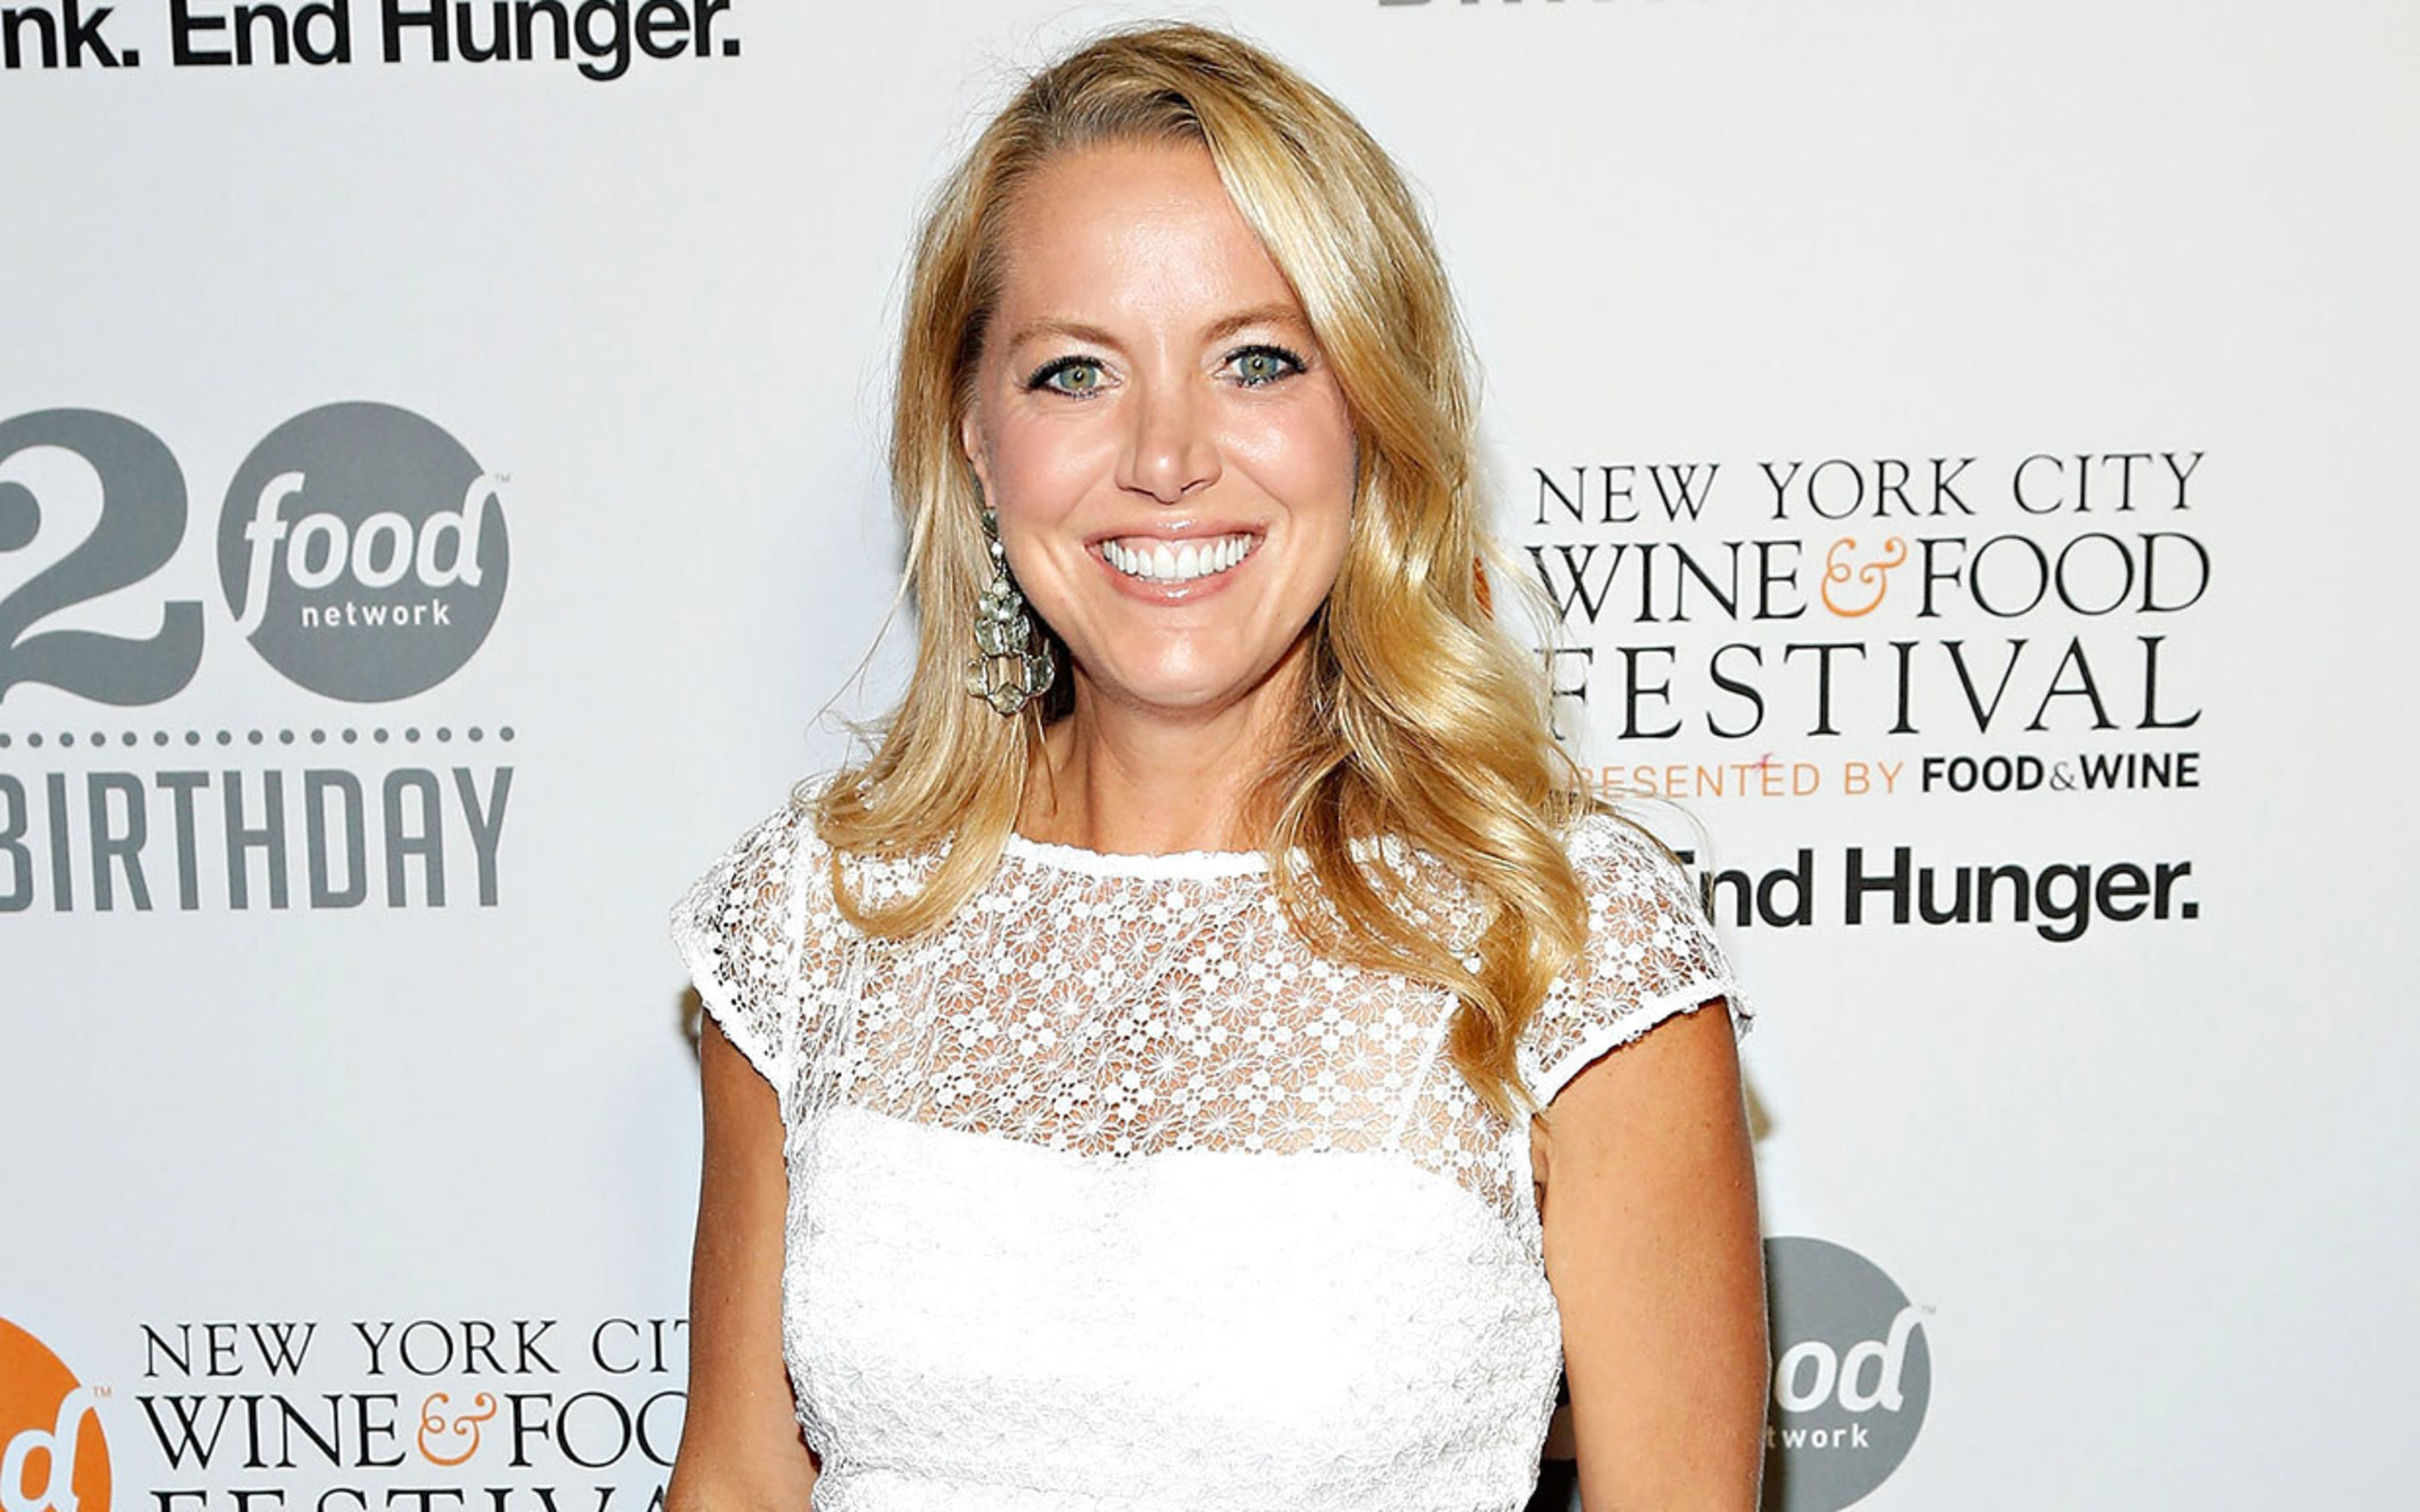 TV host, best-selling author, and mom Melissa d'Arabian is partnering with Home Instead Senior Care (http://www.homeinstead.com/) to encourage families to take the Sunday Dinner Pledge (http://www.sundaydinnerpledge.com/). For each pledge made at SundayDinnerPledge.com, the Home Instead Senior Care Foundation (https://www.homeinsteadseniorcarefoundation.org/) will be donating $1 to Meals on Wheels America (http://www.mealsonwheelsamerica.org/), up to $20,000. Visitors will also find resources to make hosting their own family meal even easier, including Melissa's recipes for fast, affordable, nutritious and delicious meals that all generations of the family will enjoy.